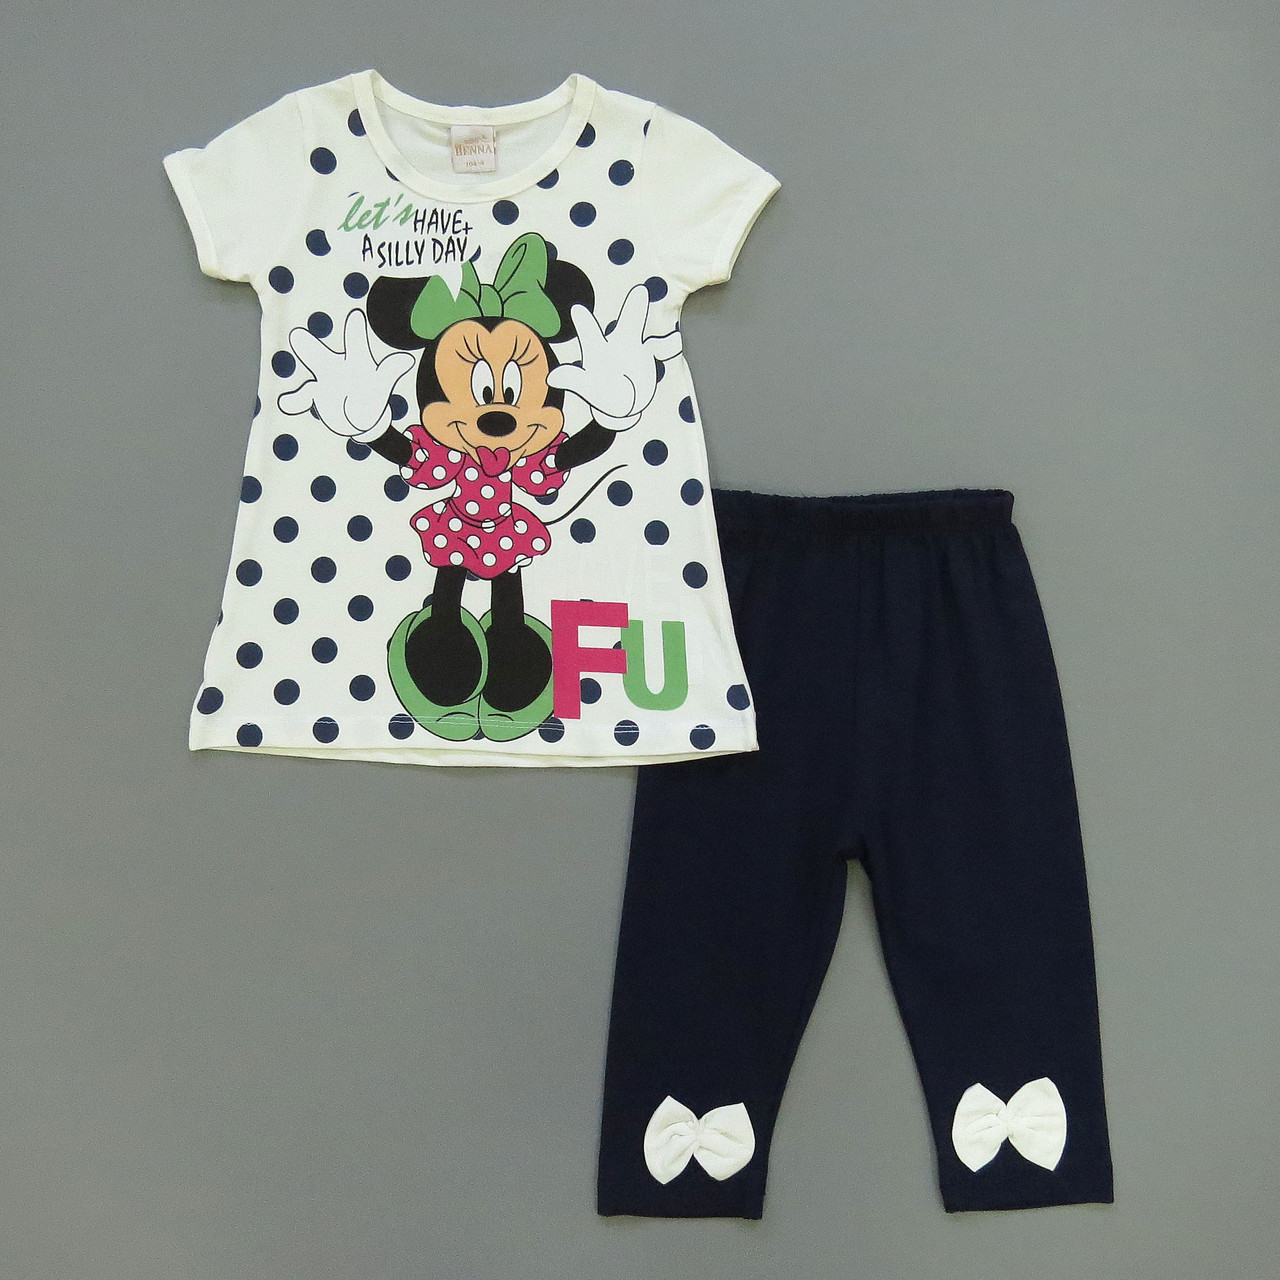 Летний костюм Minnie Mouse для девочки. 98 см